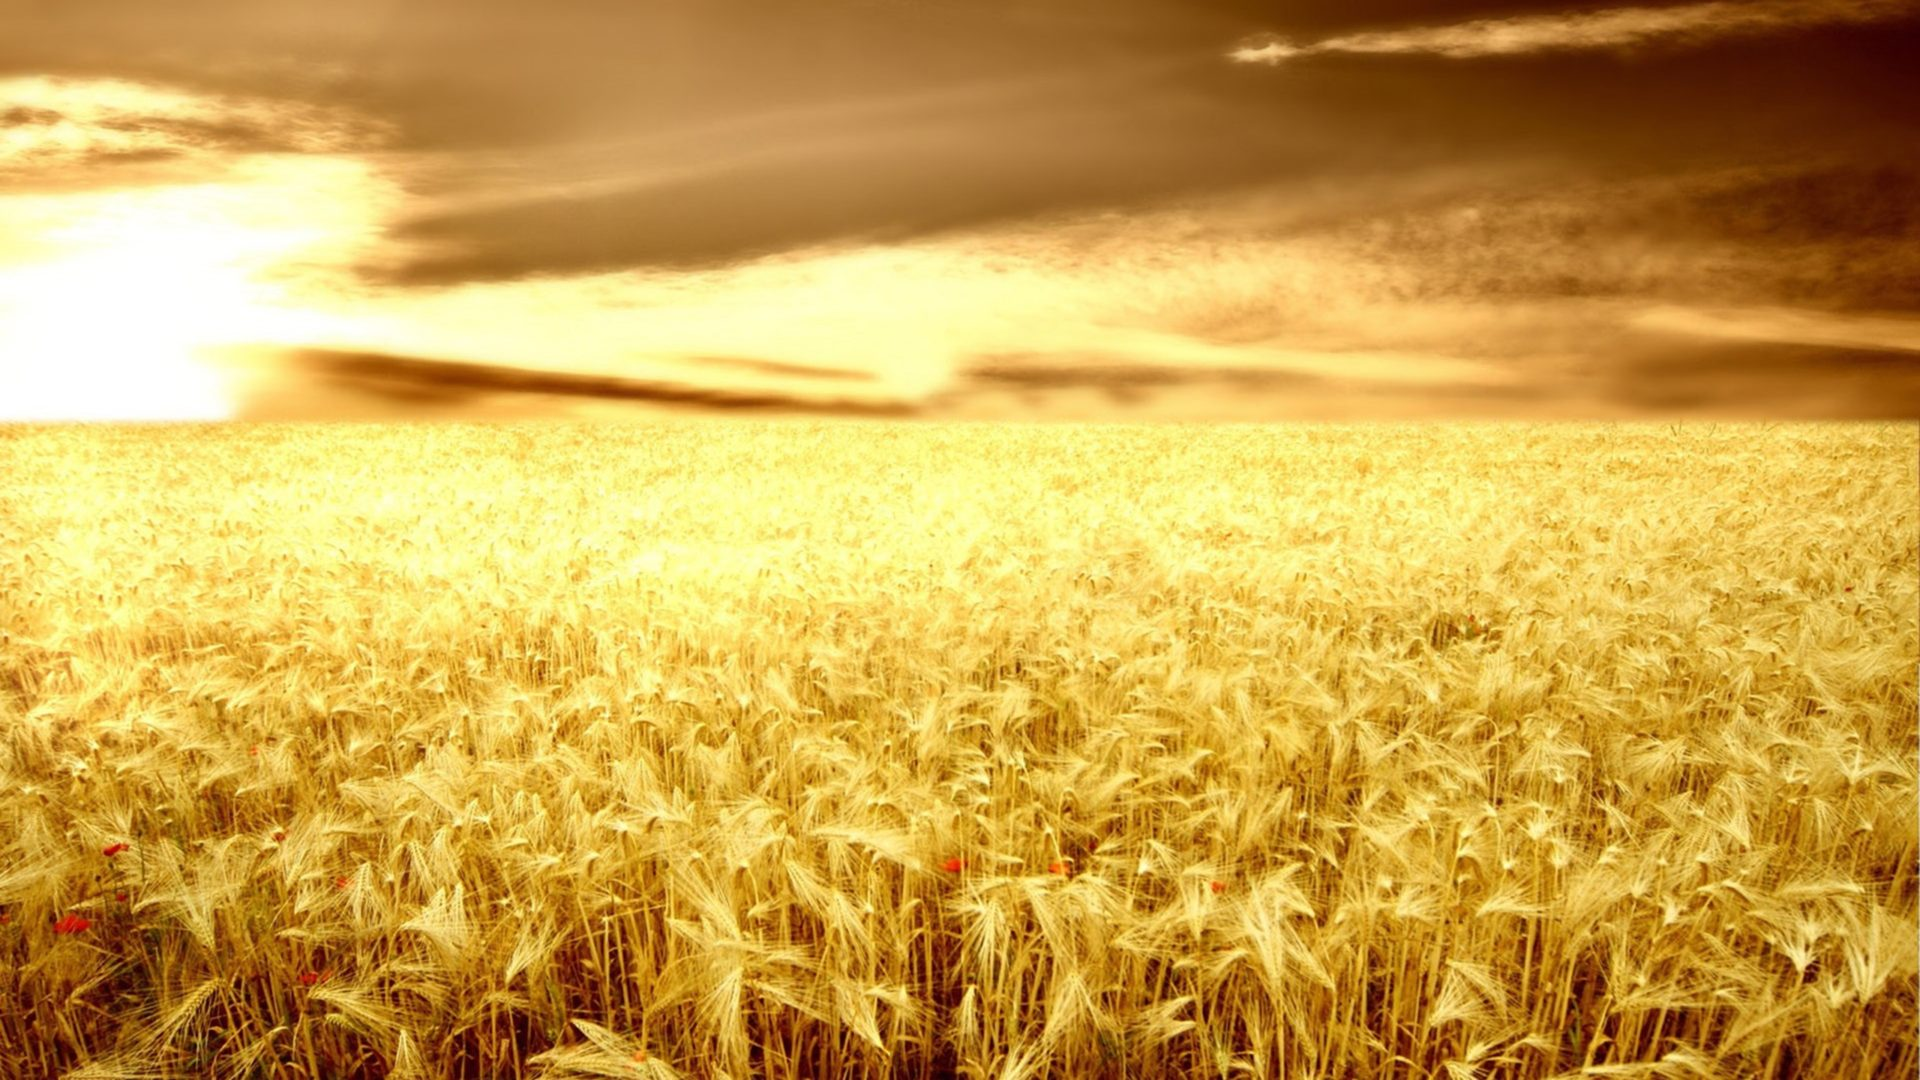 Wallpaper For Iphone 4 Lock Screen Sunset Over The Wheat Field Wallpaper Nature Wallpaper